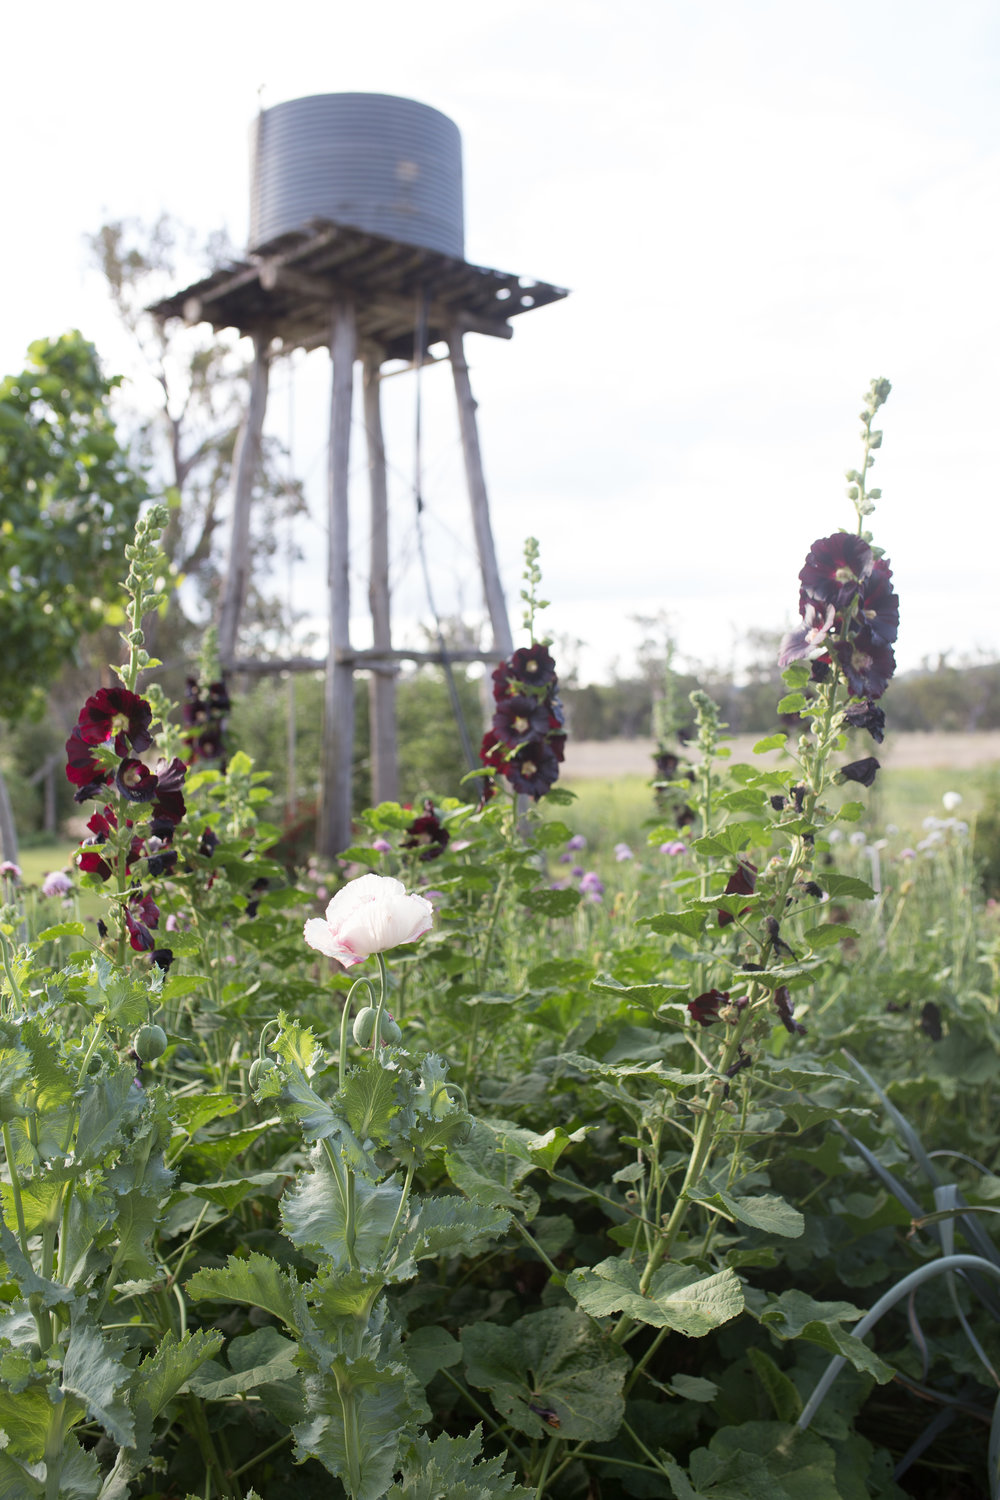 Hollyhocks and poppies